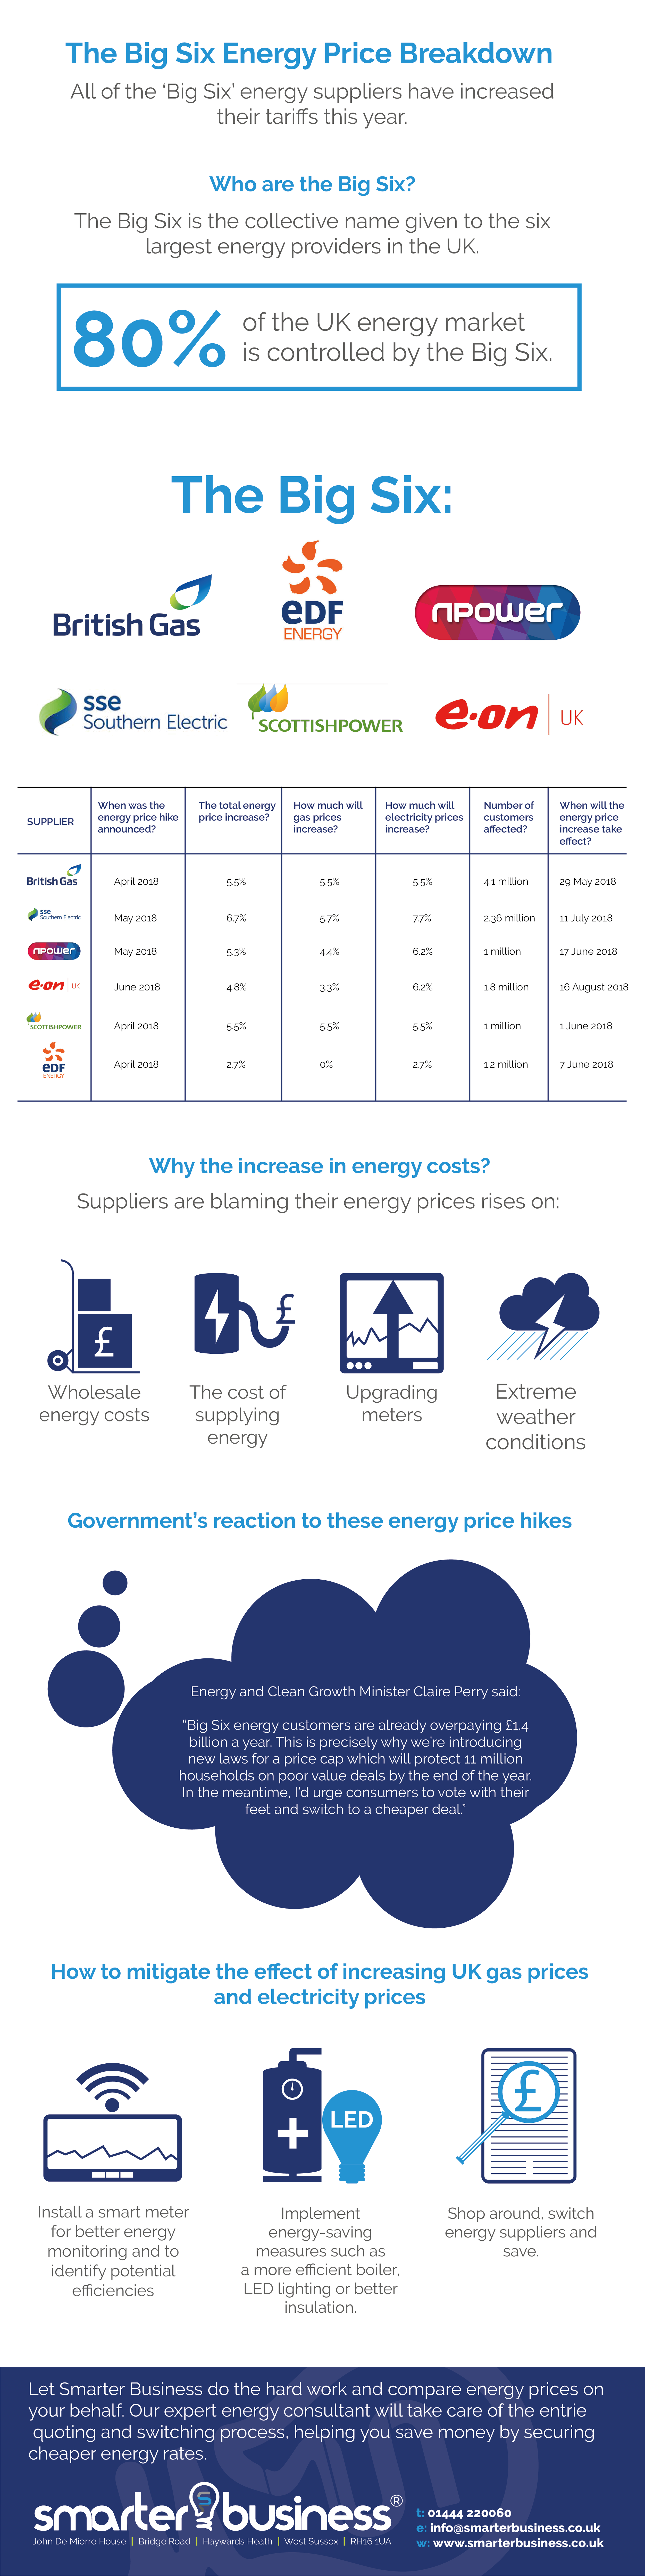 UK gas prices and UK electricity prices